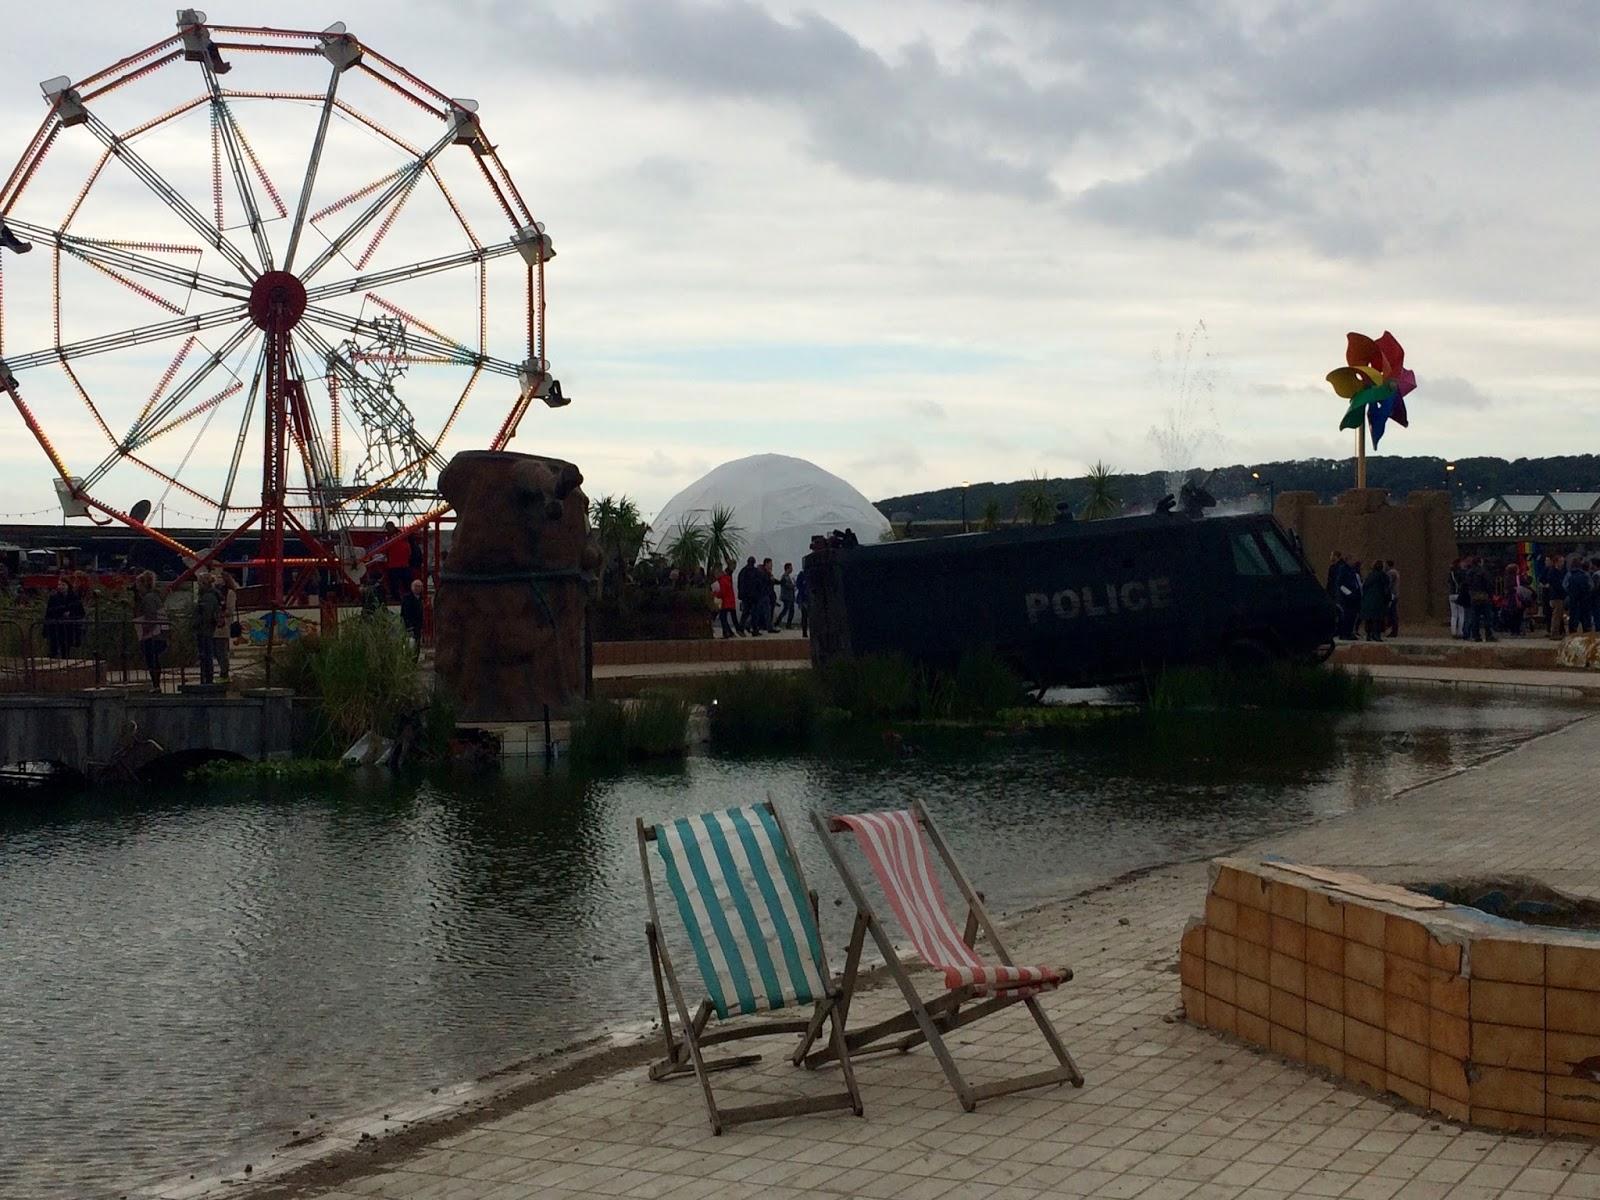 Dismaland Deck Chairs and Ferris Wheel